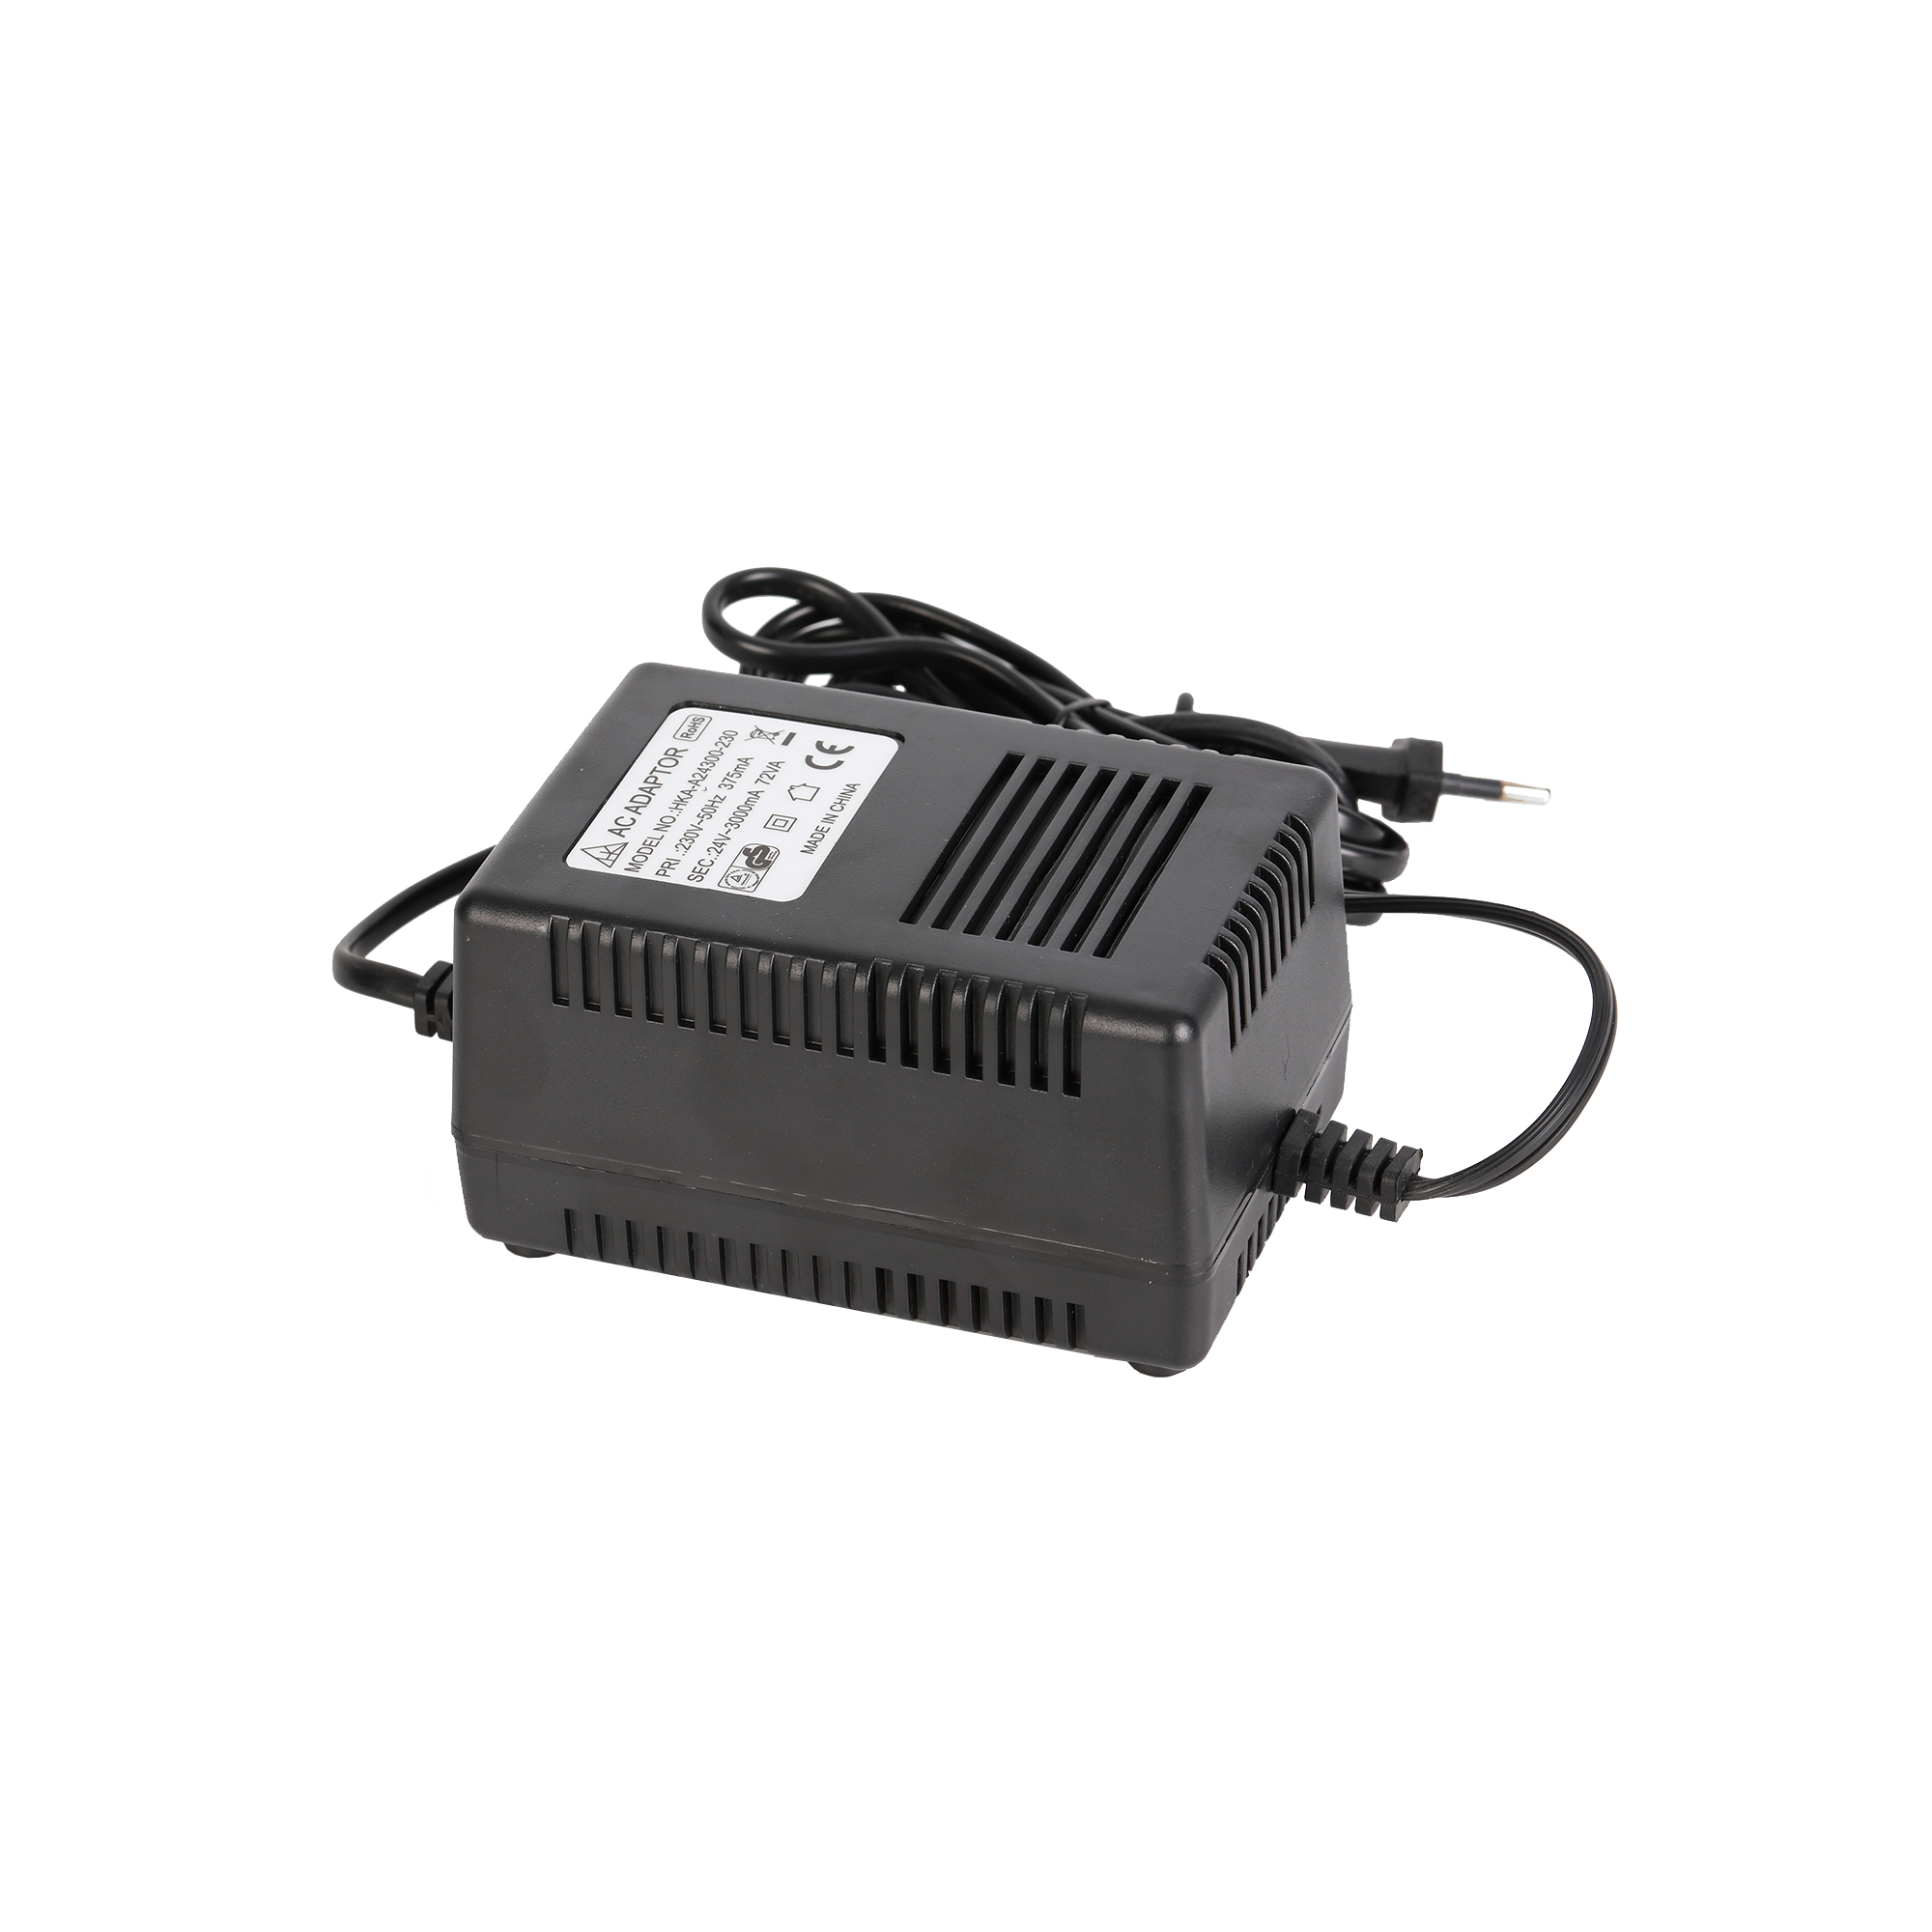 DAHUA EUROPE AC24V3A INDOOR BLACK POWER ADAPTER/INVERTER